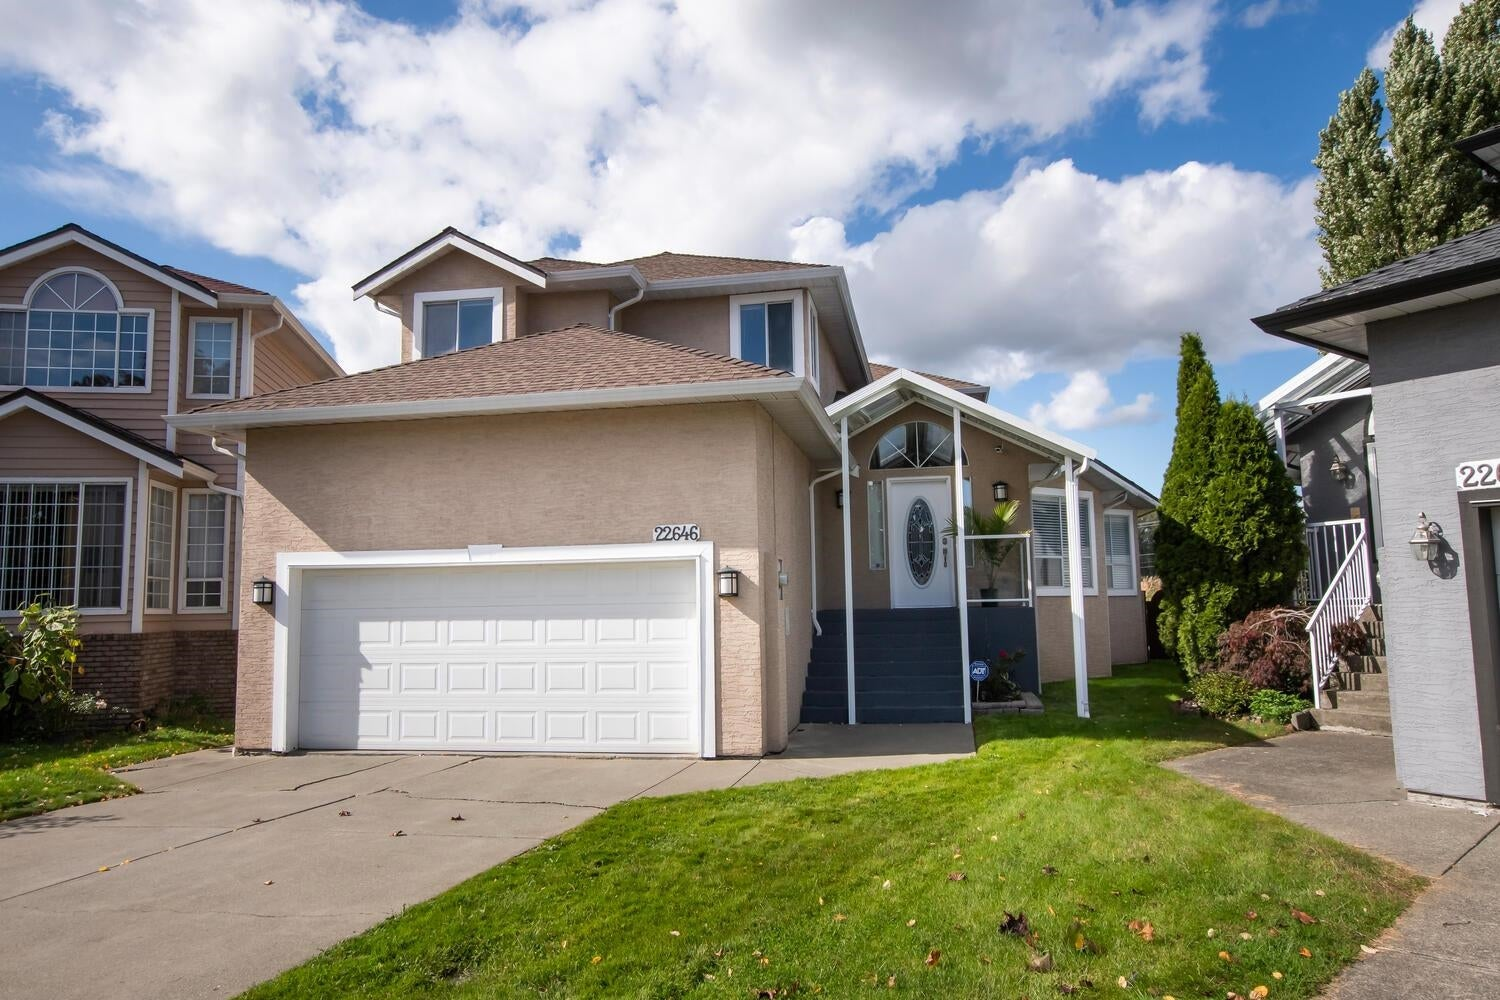 22646 FRASERBANK CRESCENT - Hamilton RI House/Single Family for sale, 5 Bedrooms (R2622204)